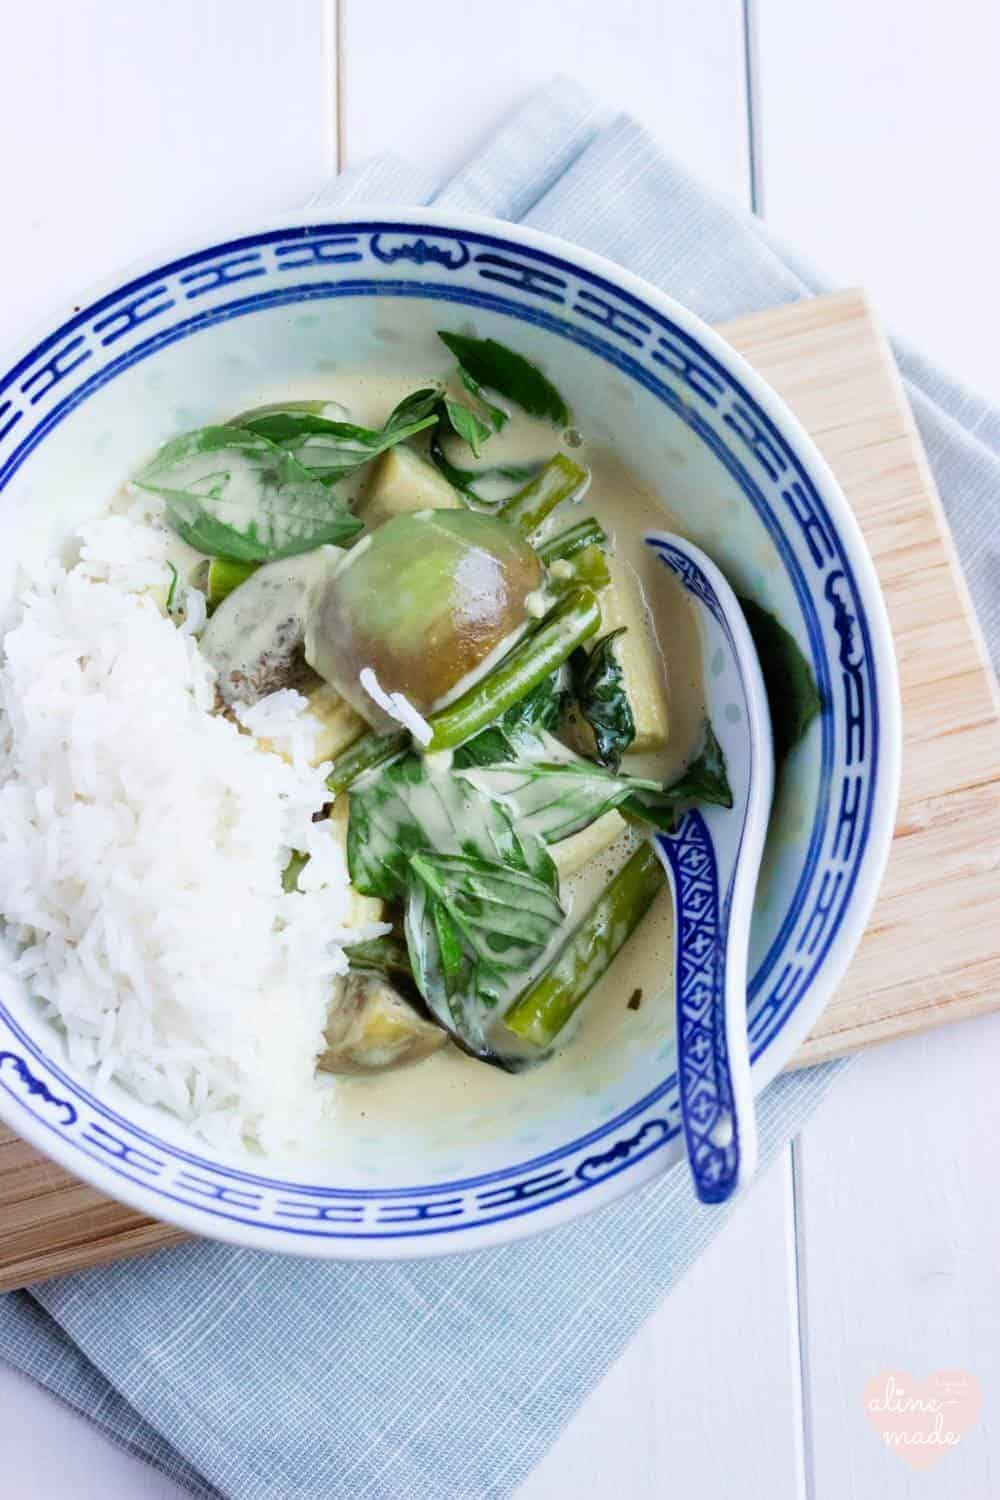 Vegan Thai Green Curry - Served with Basmati Rice.